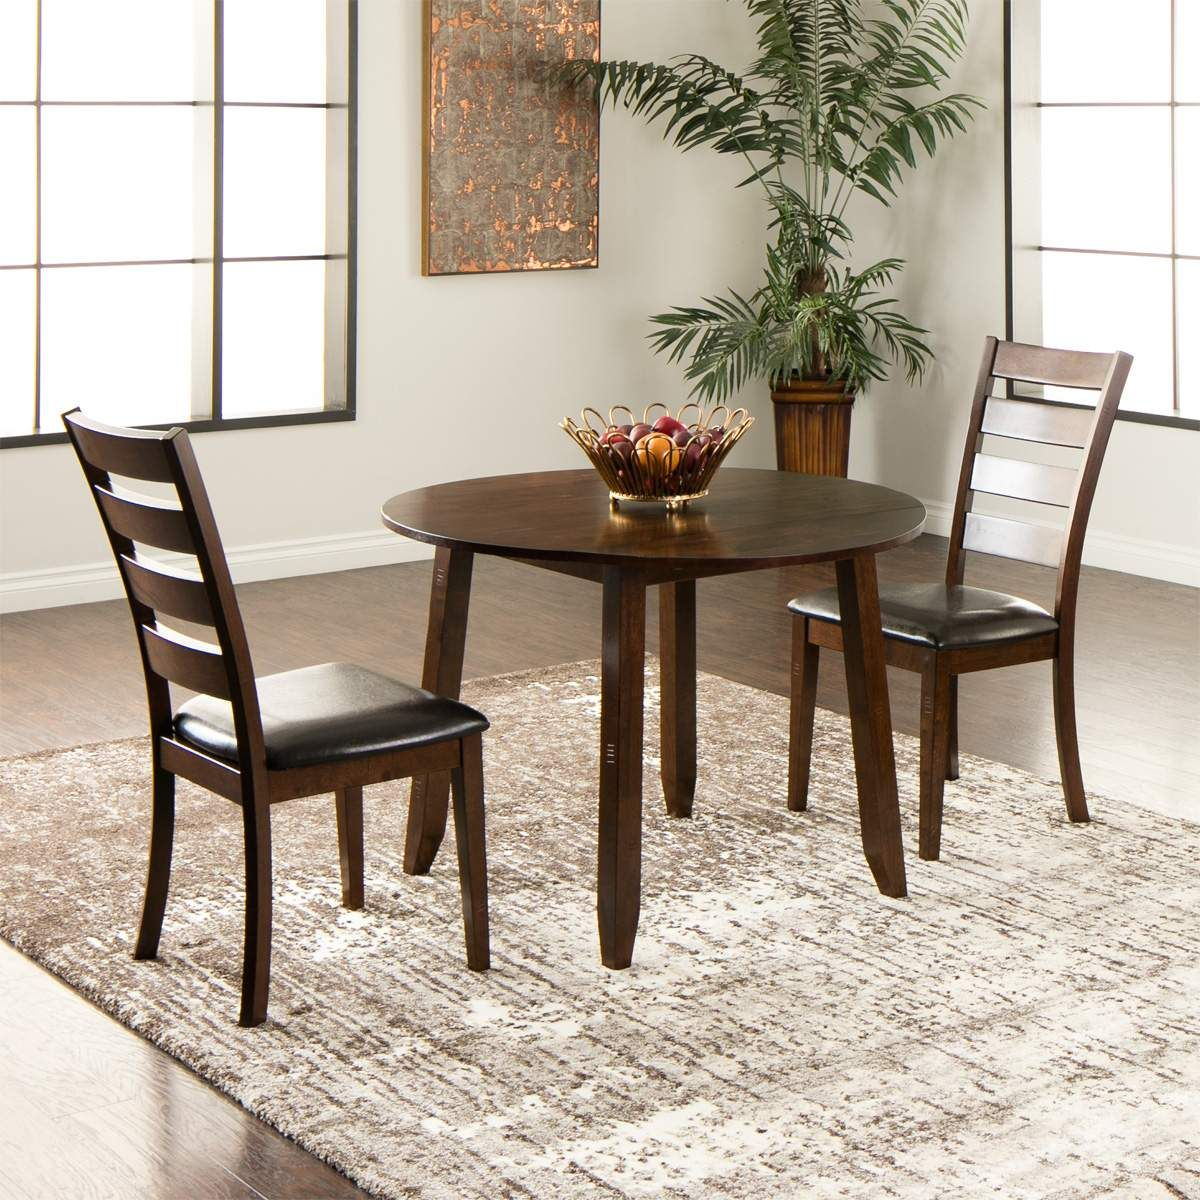 the kona 3 piece dinette set is inspired by traditional cafe designs and constructed of mango wood with veneers the tall ladder back side chair adds an